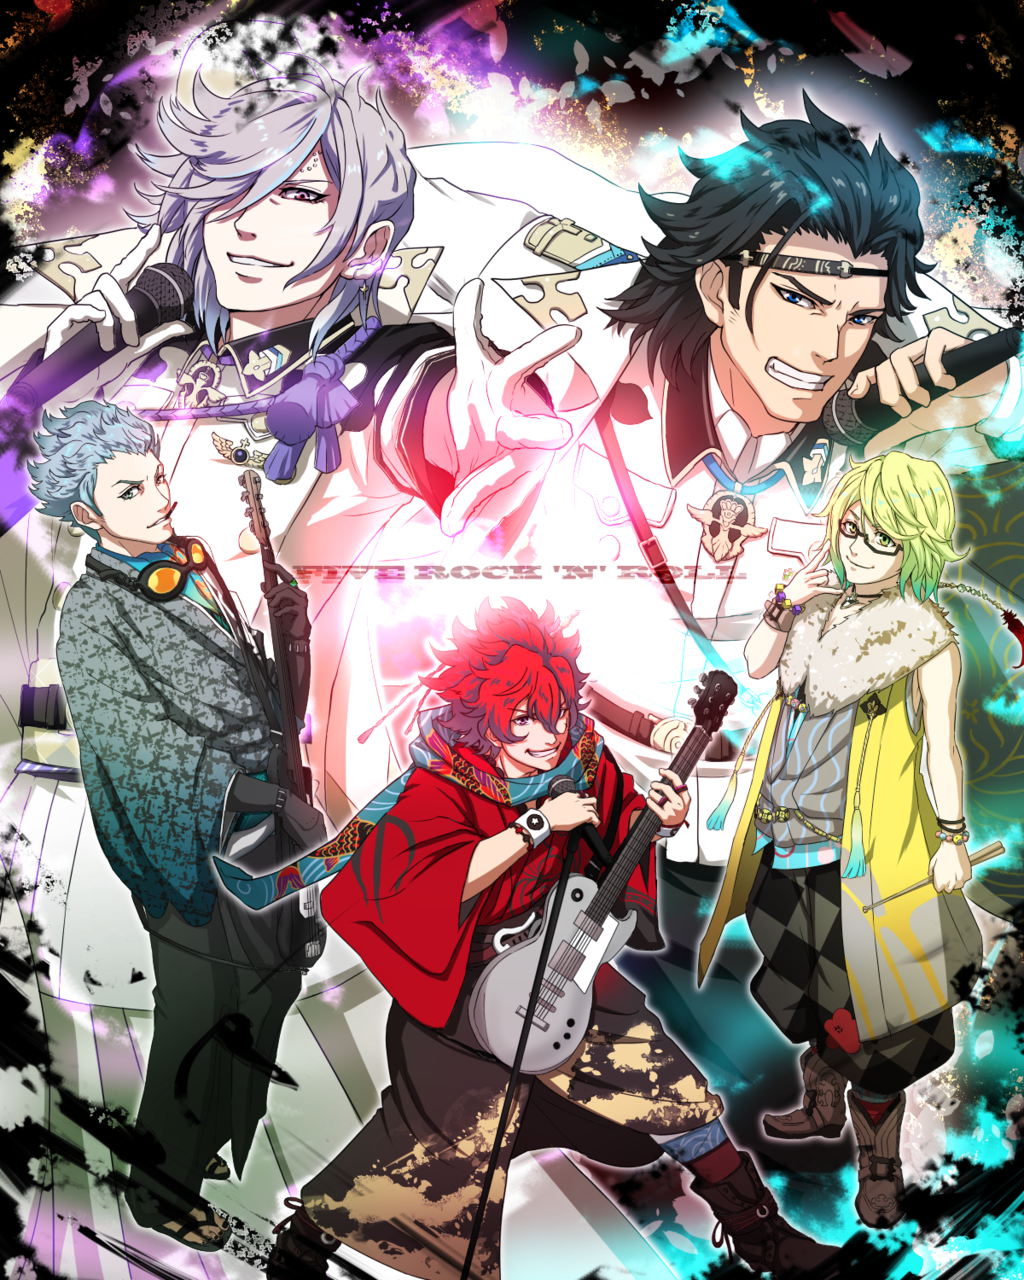 Tenchi S Thoughts Tsubasa Reservoir Chronicles Chapters: Samurai Jam - Bakumatsu Rock